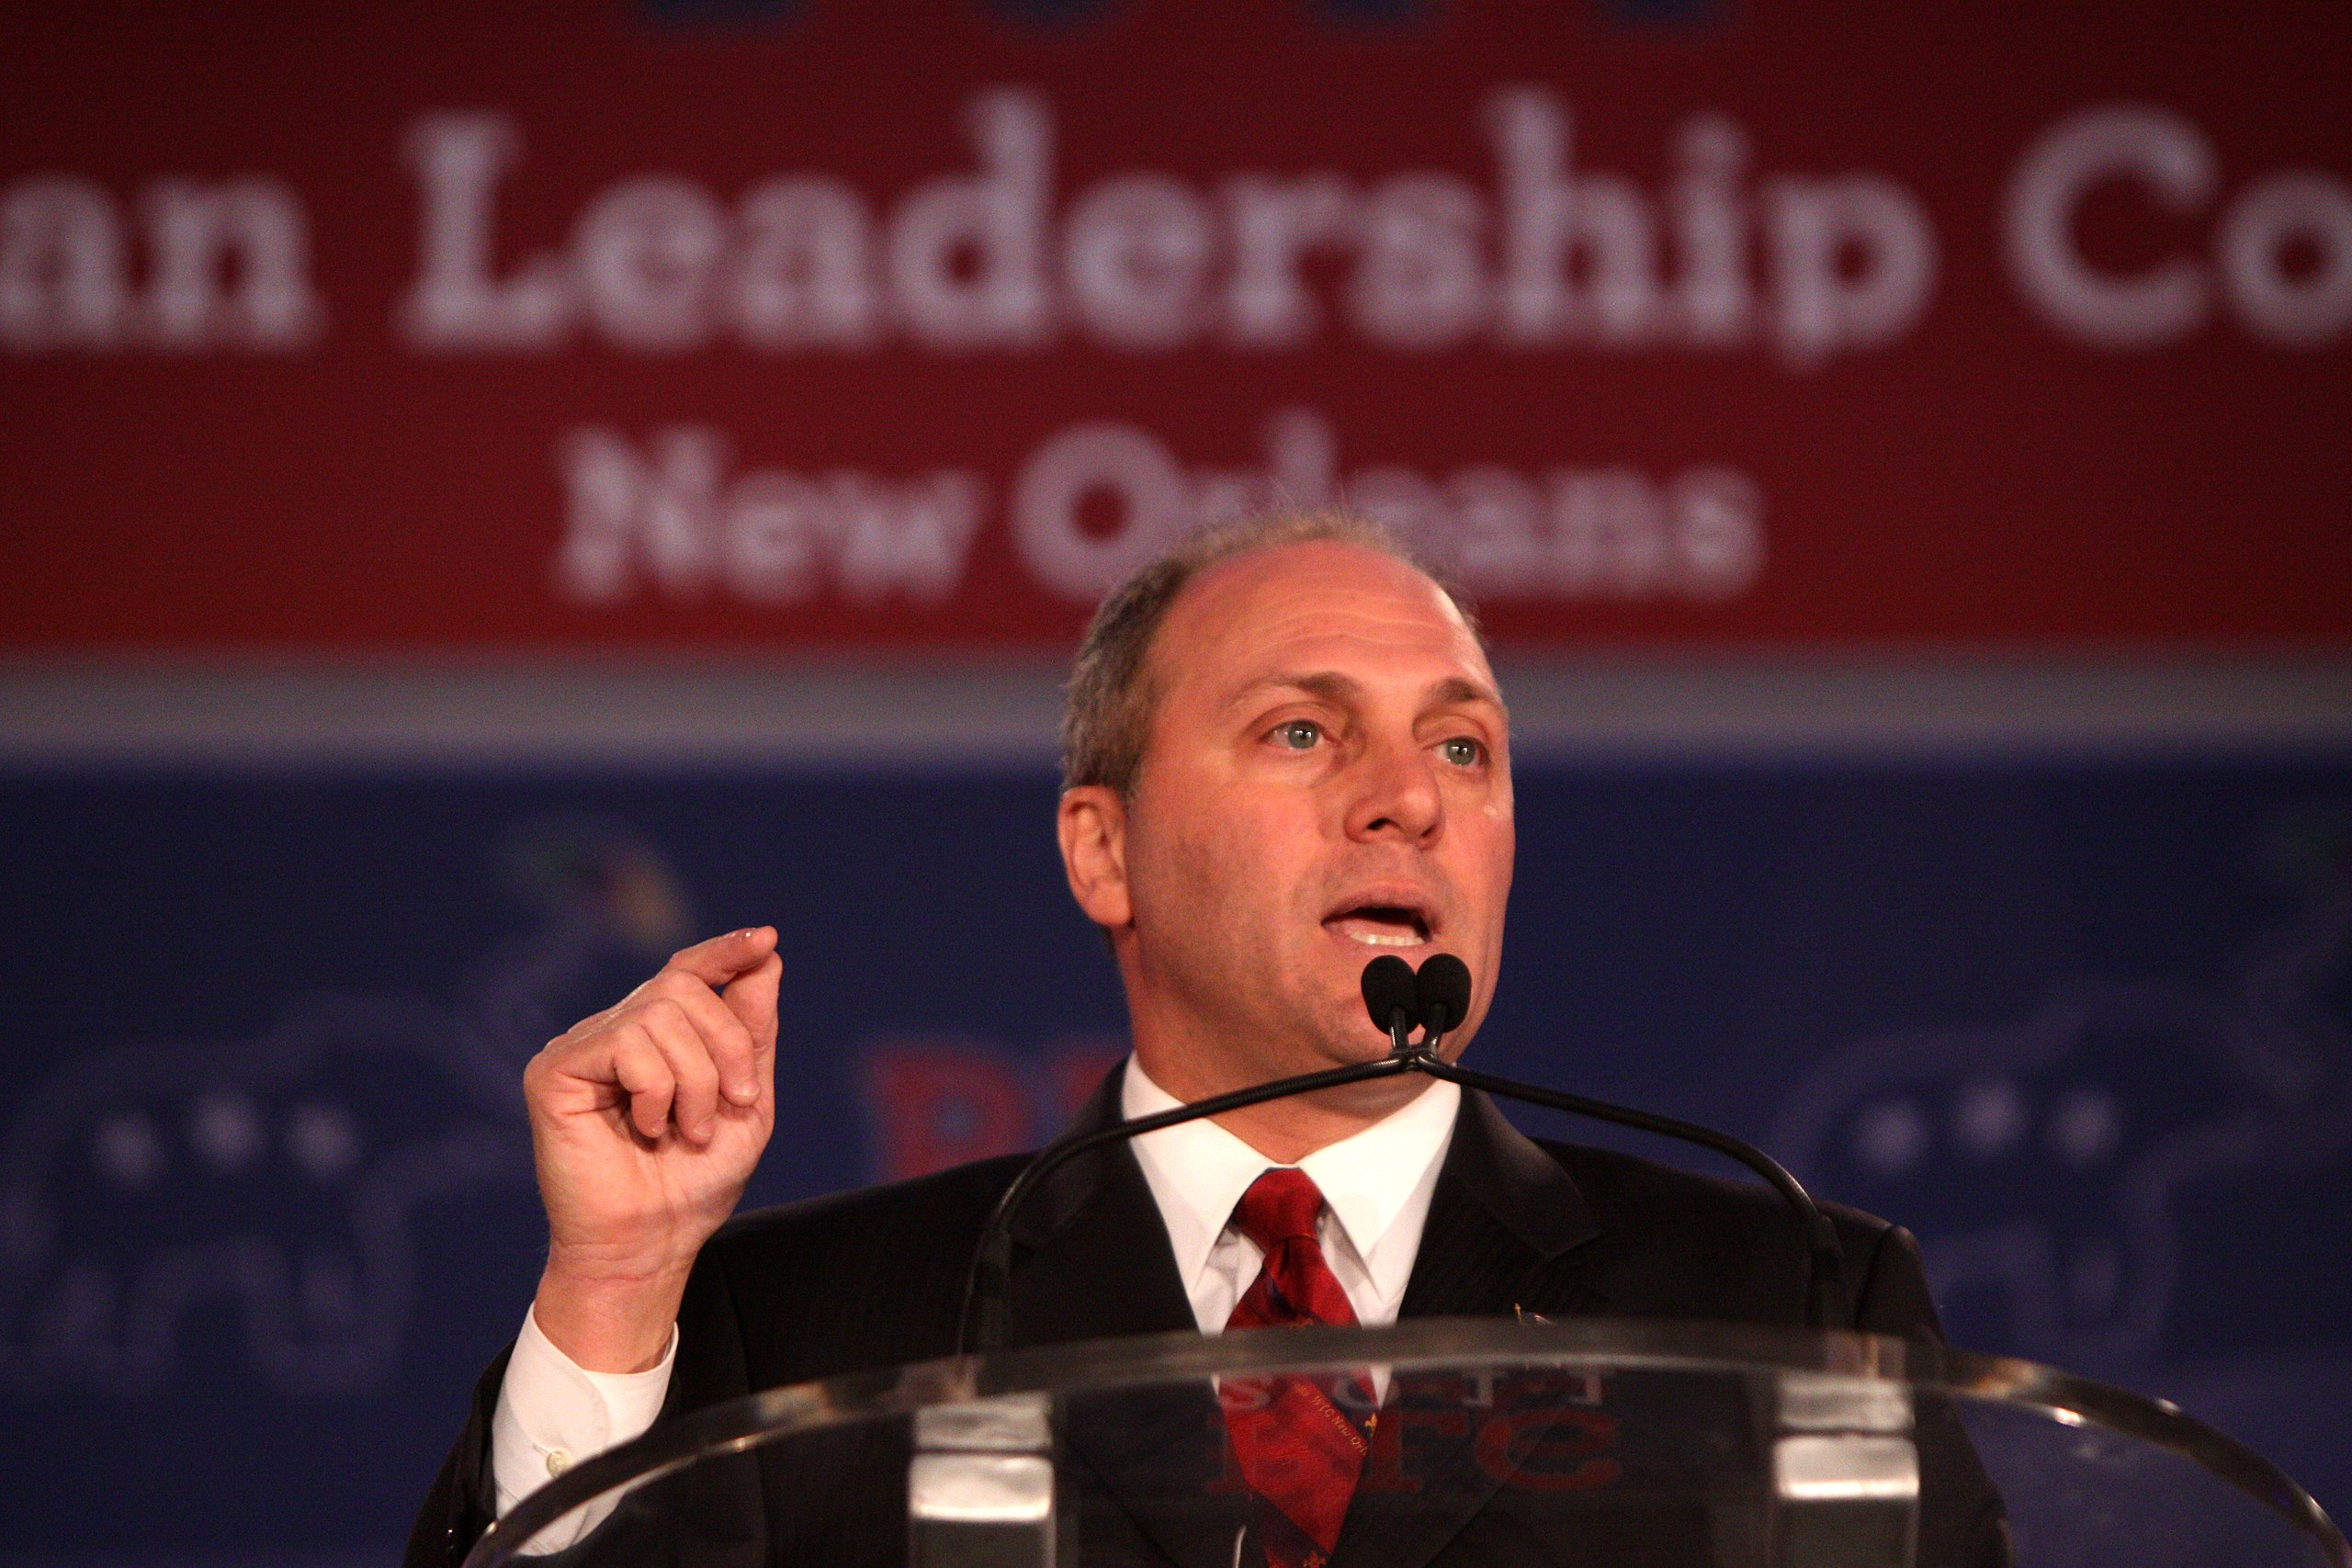 STEVE SCALISE WINS TWEET OF THE YEAR